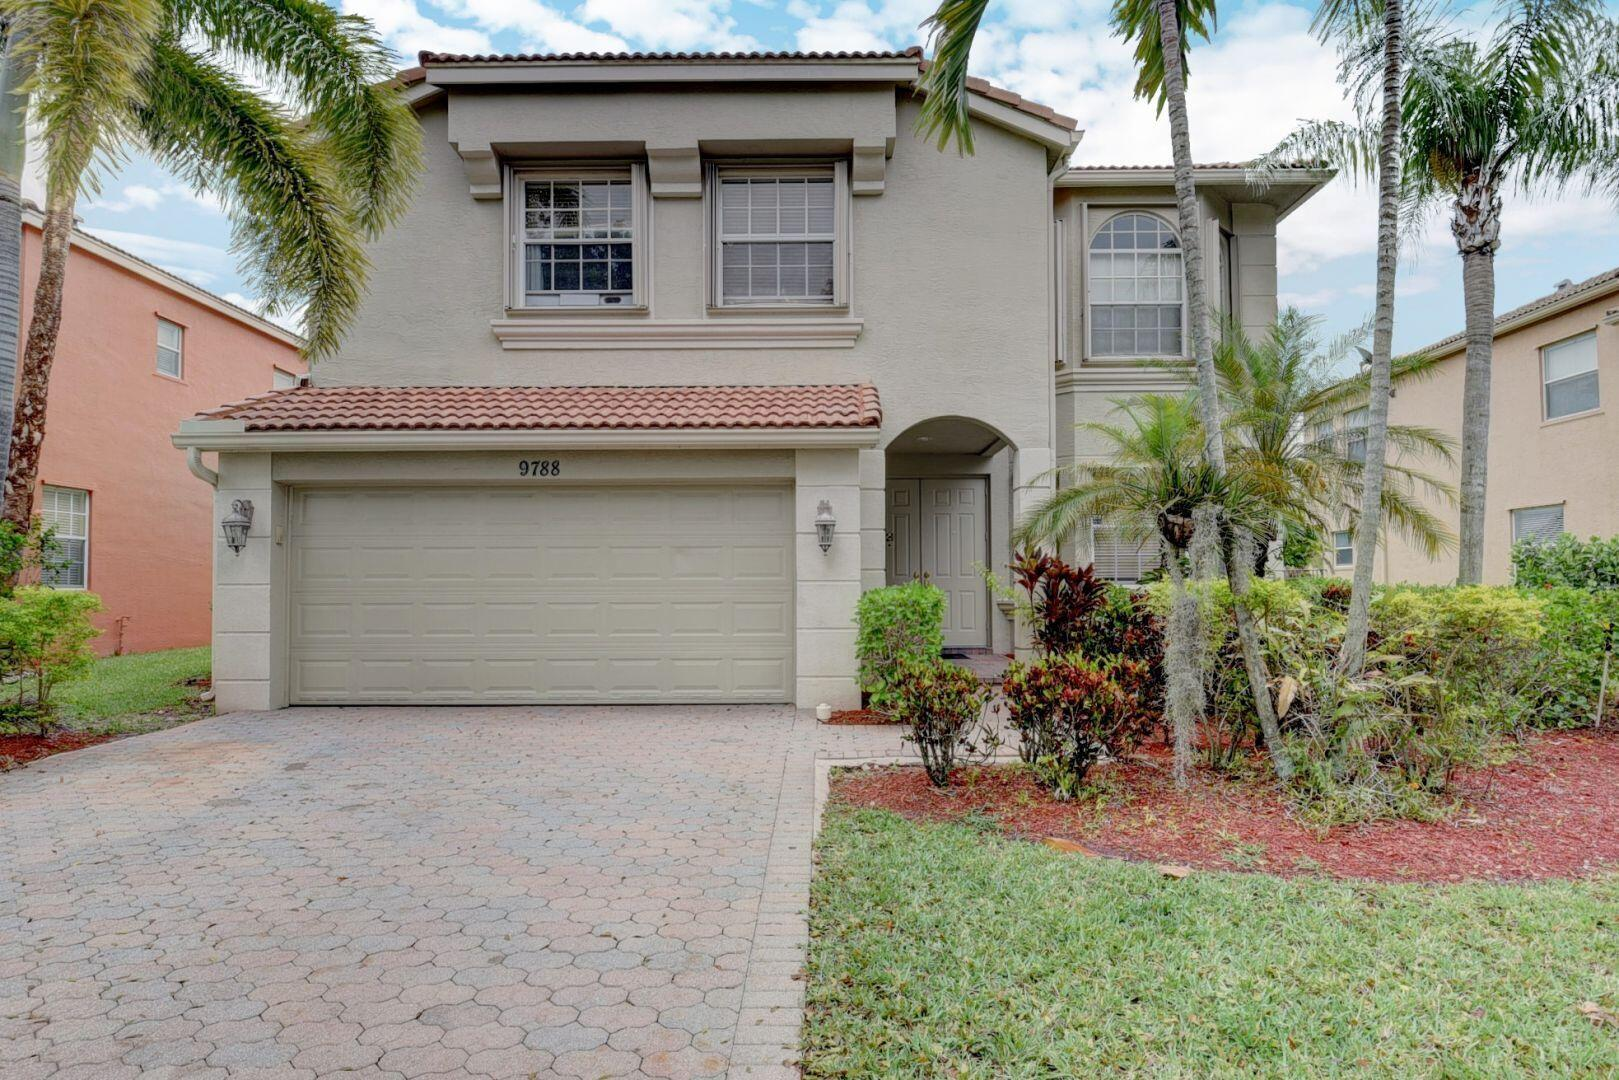 9788  Stover Way  For Sale 10709156, FL